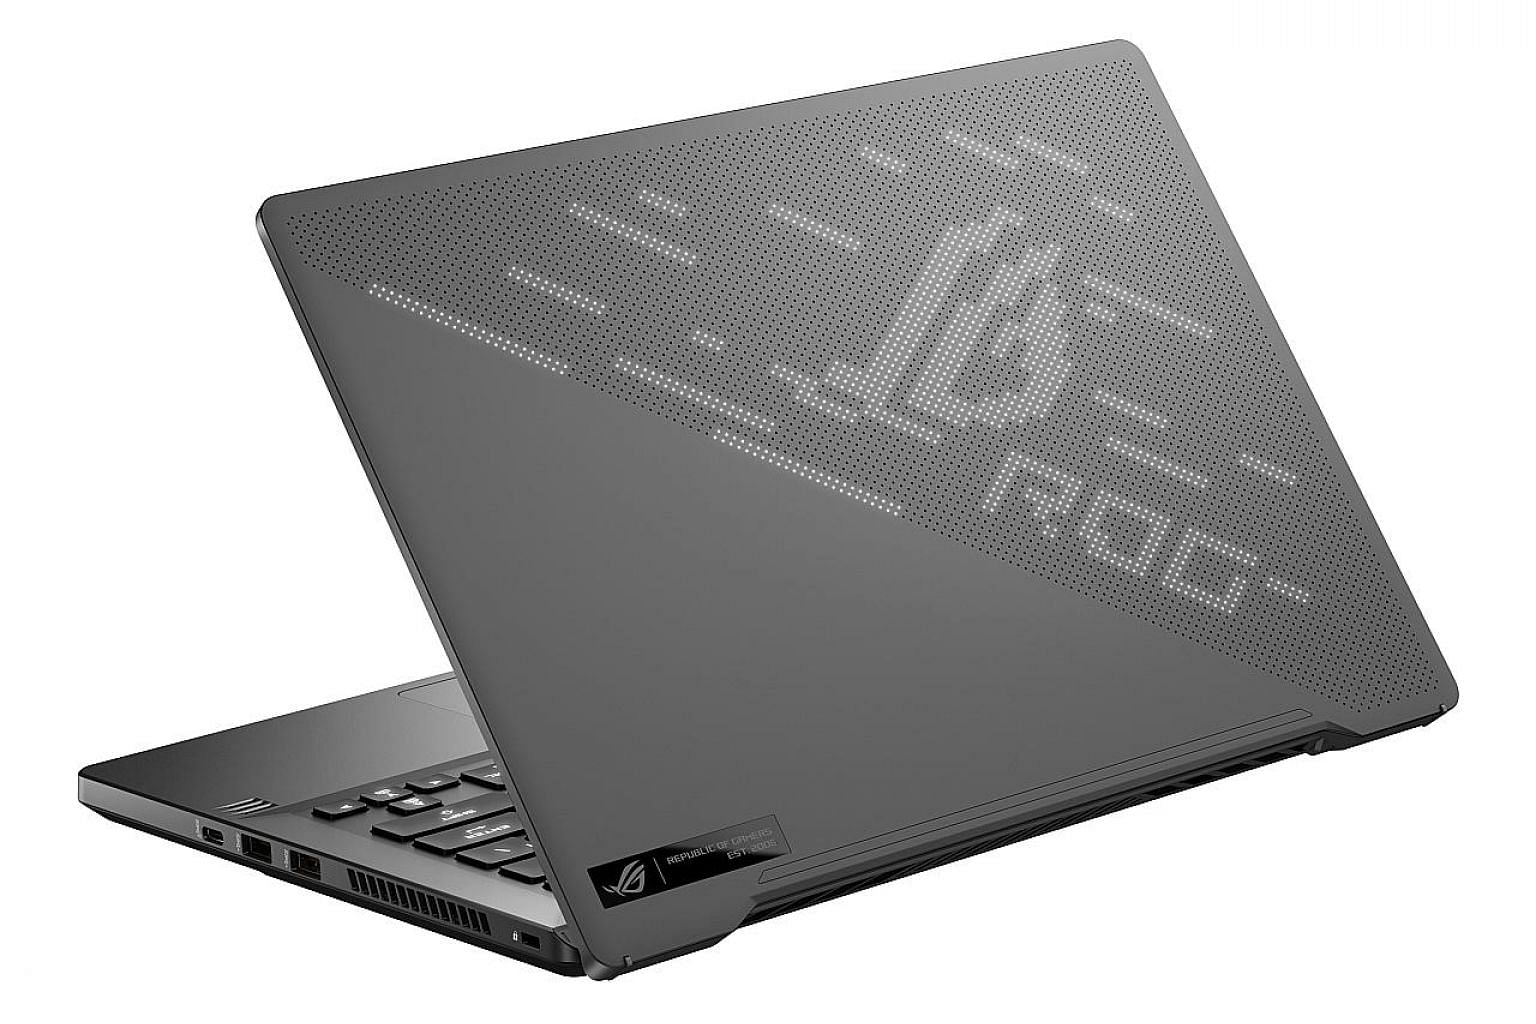 The Asus ROG Zephyrus G14 is one of the first notebooks to come with AMD's latest Ryzen 9 processor.